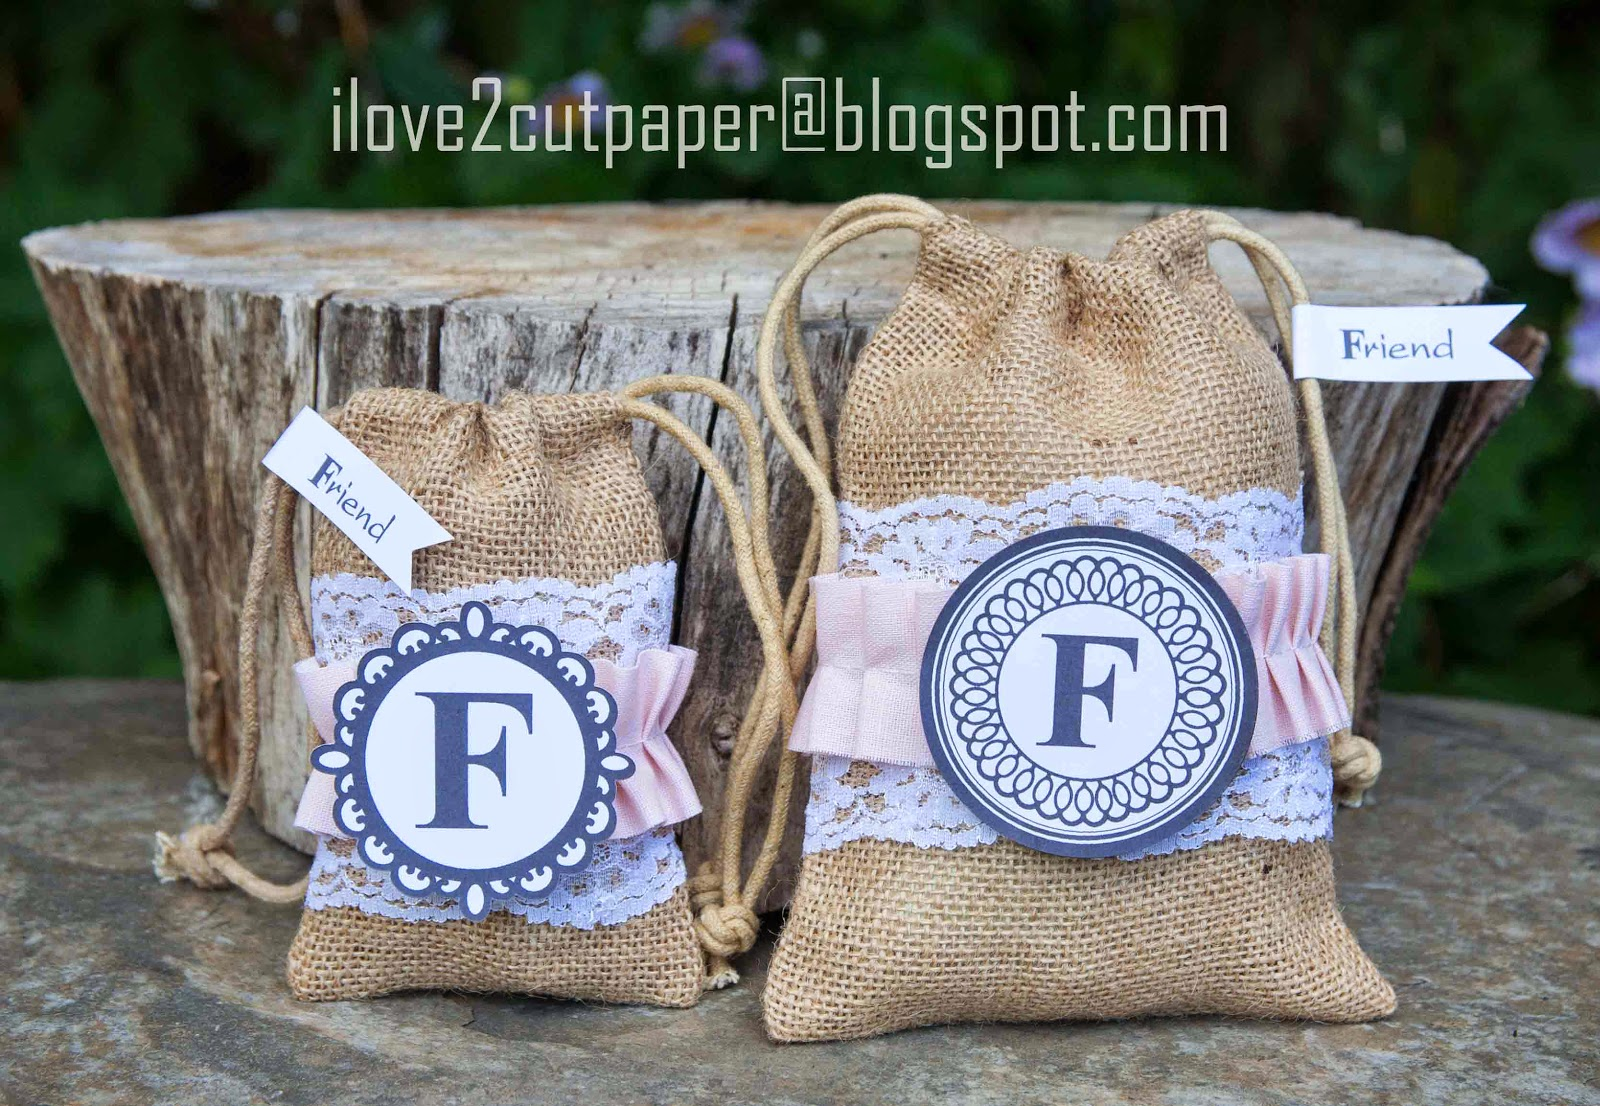 Monogram Toppers for Gift Bags